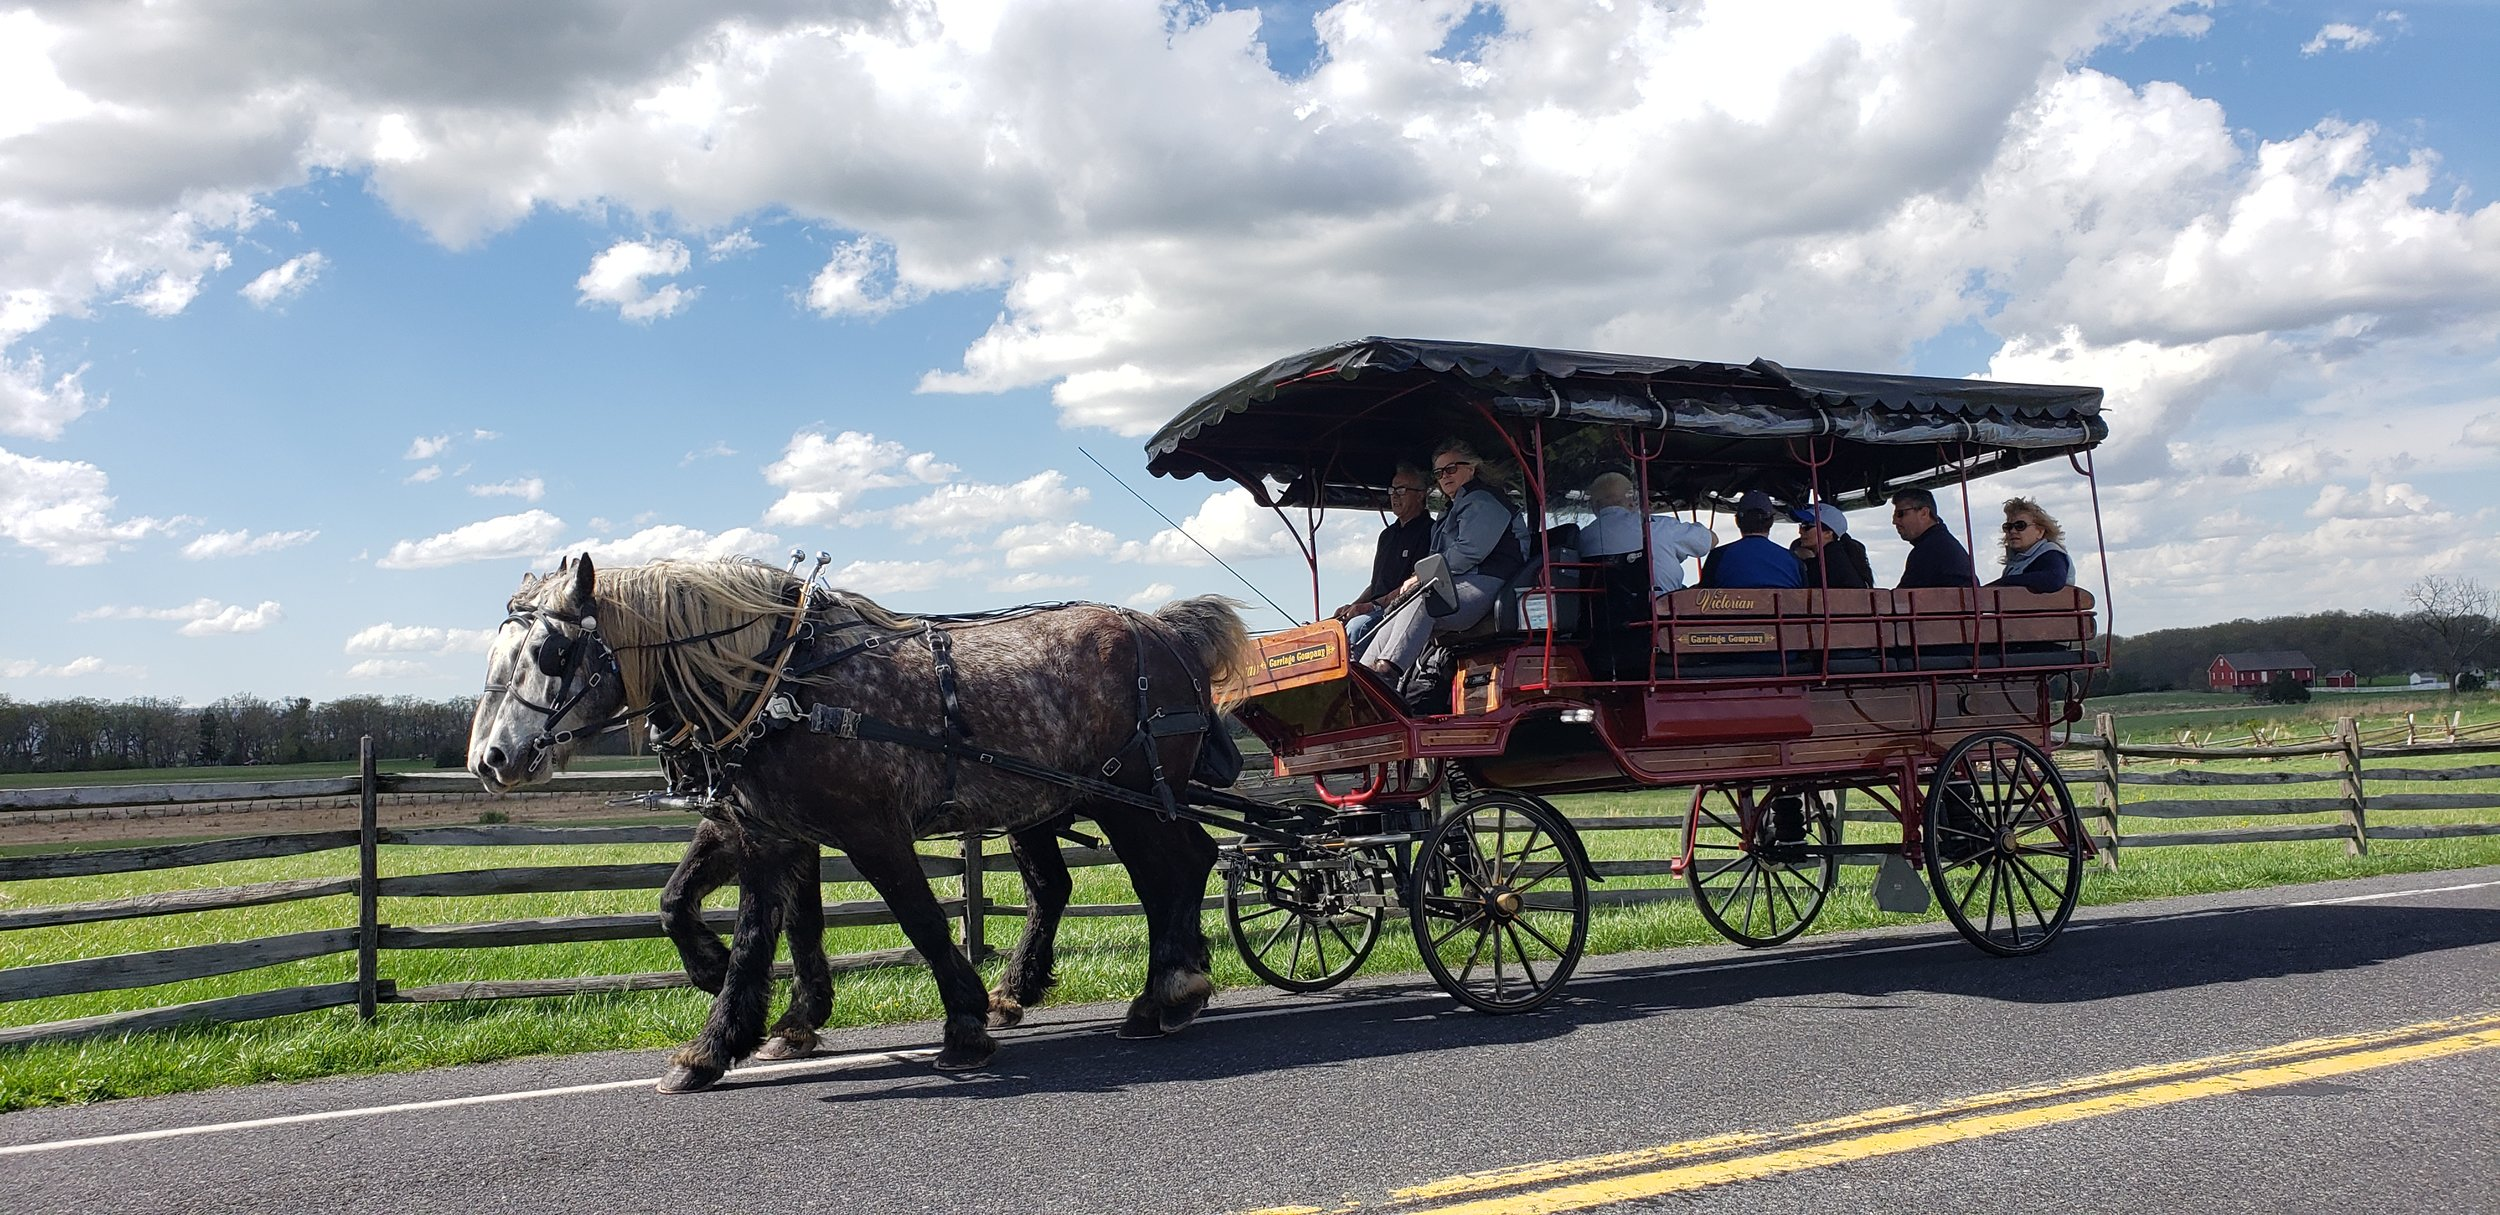 A carriage can hold you and your entire extended family. What a wonderful way to create a memory!